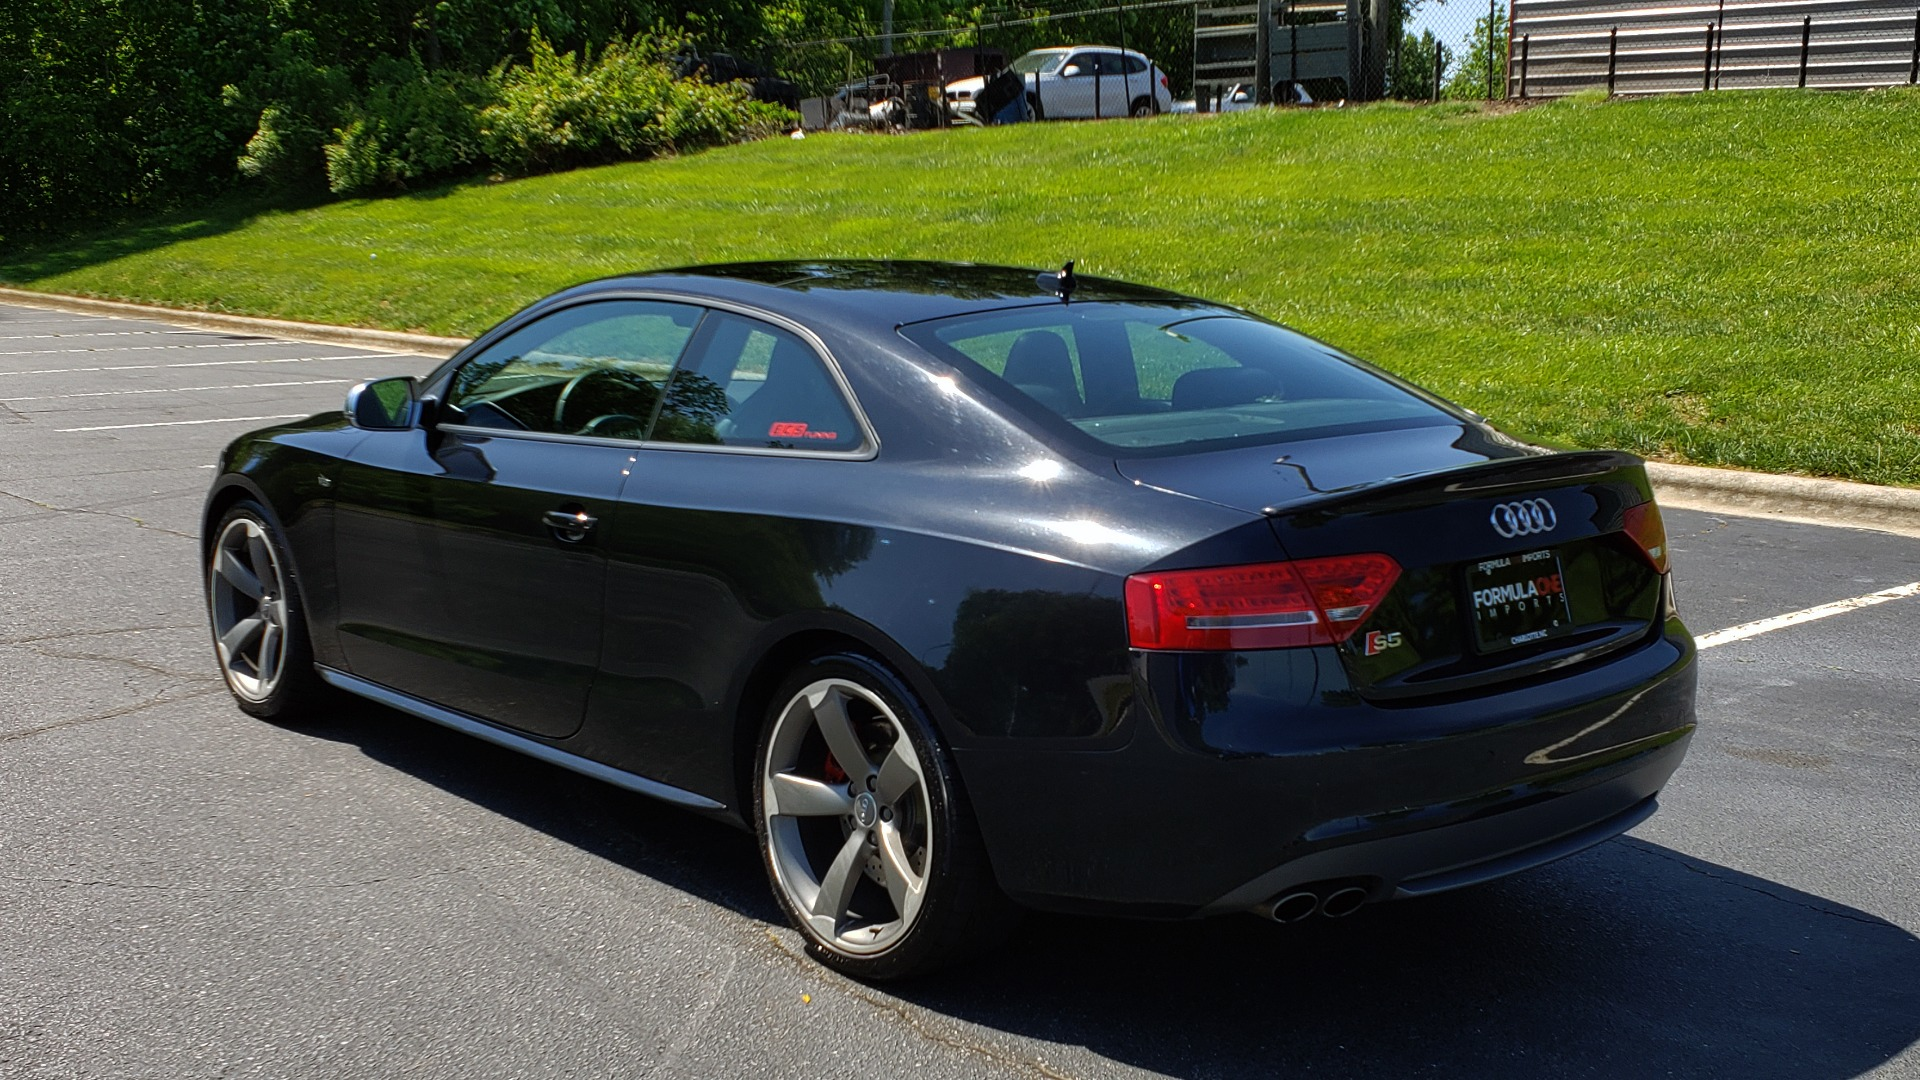 Used 2011 Audi S5 PREMIUM PLUS / AVENGERS COUPE / NAV / SUNROOF / REARVIEW for sale Sold at Formula Imports in Charlotte NC 28227 3